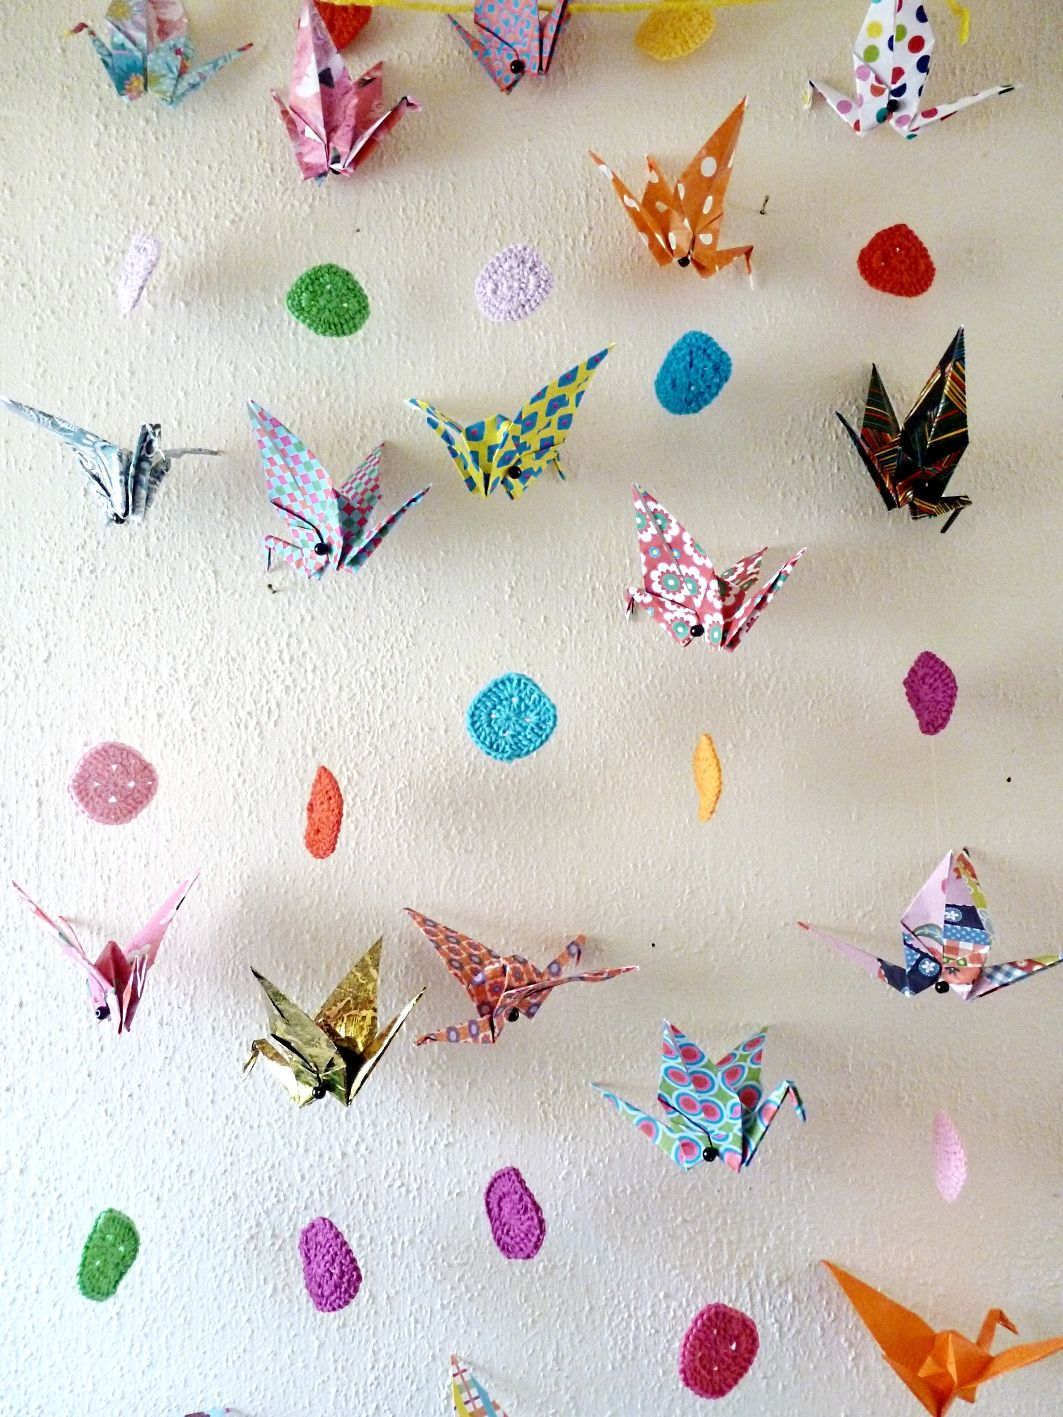 Franciens haakwerk: Playing with the origami birds